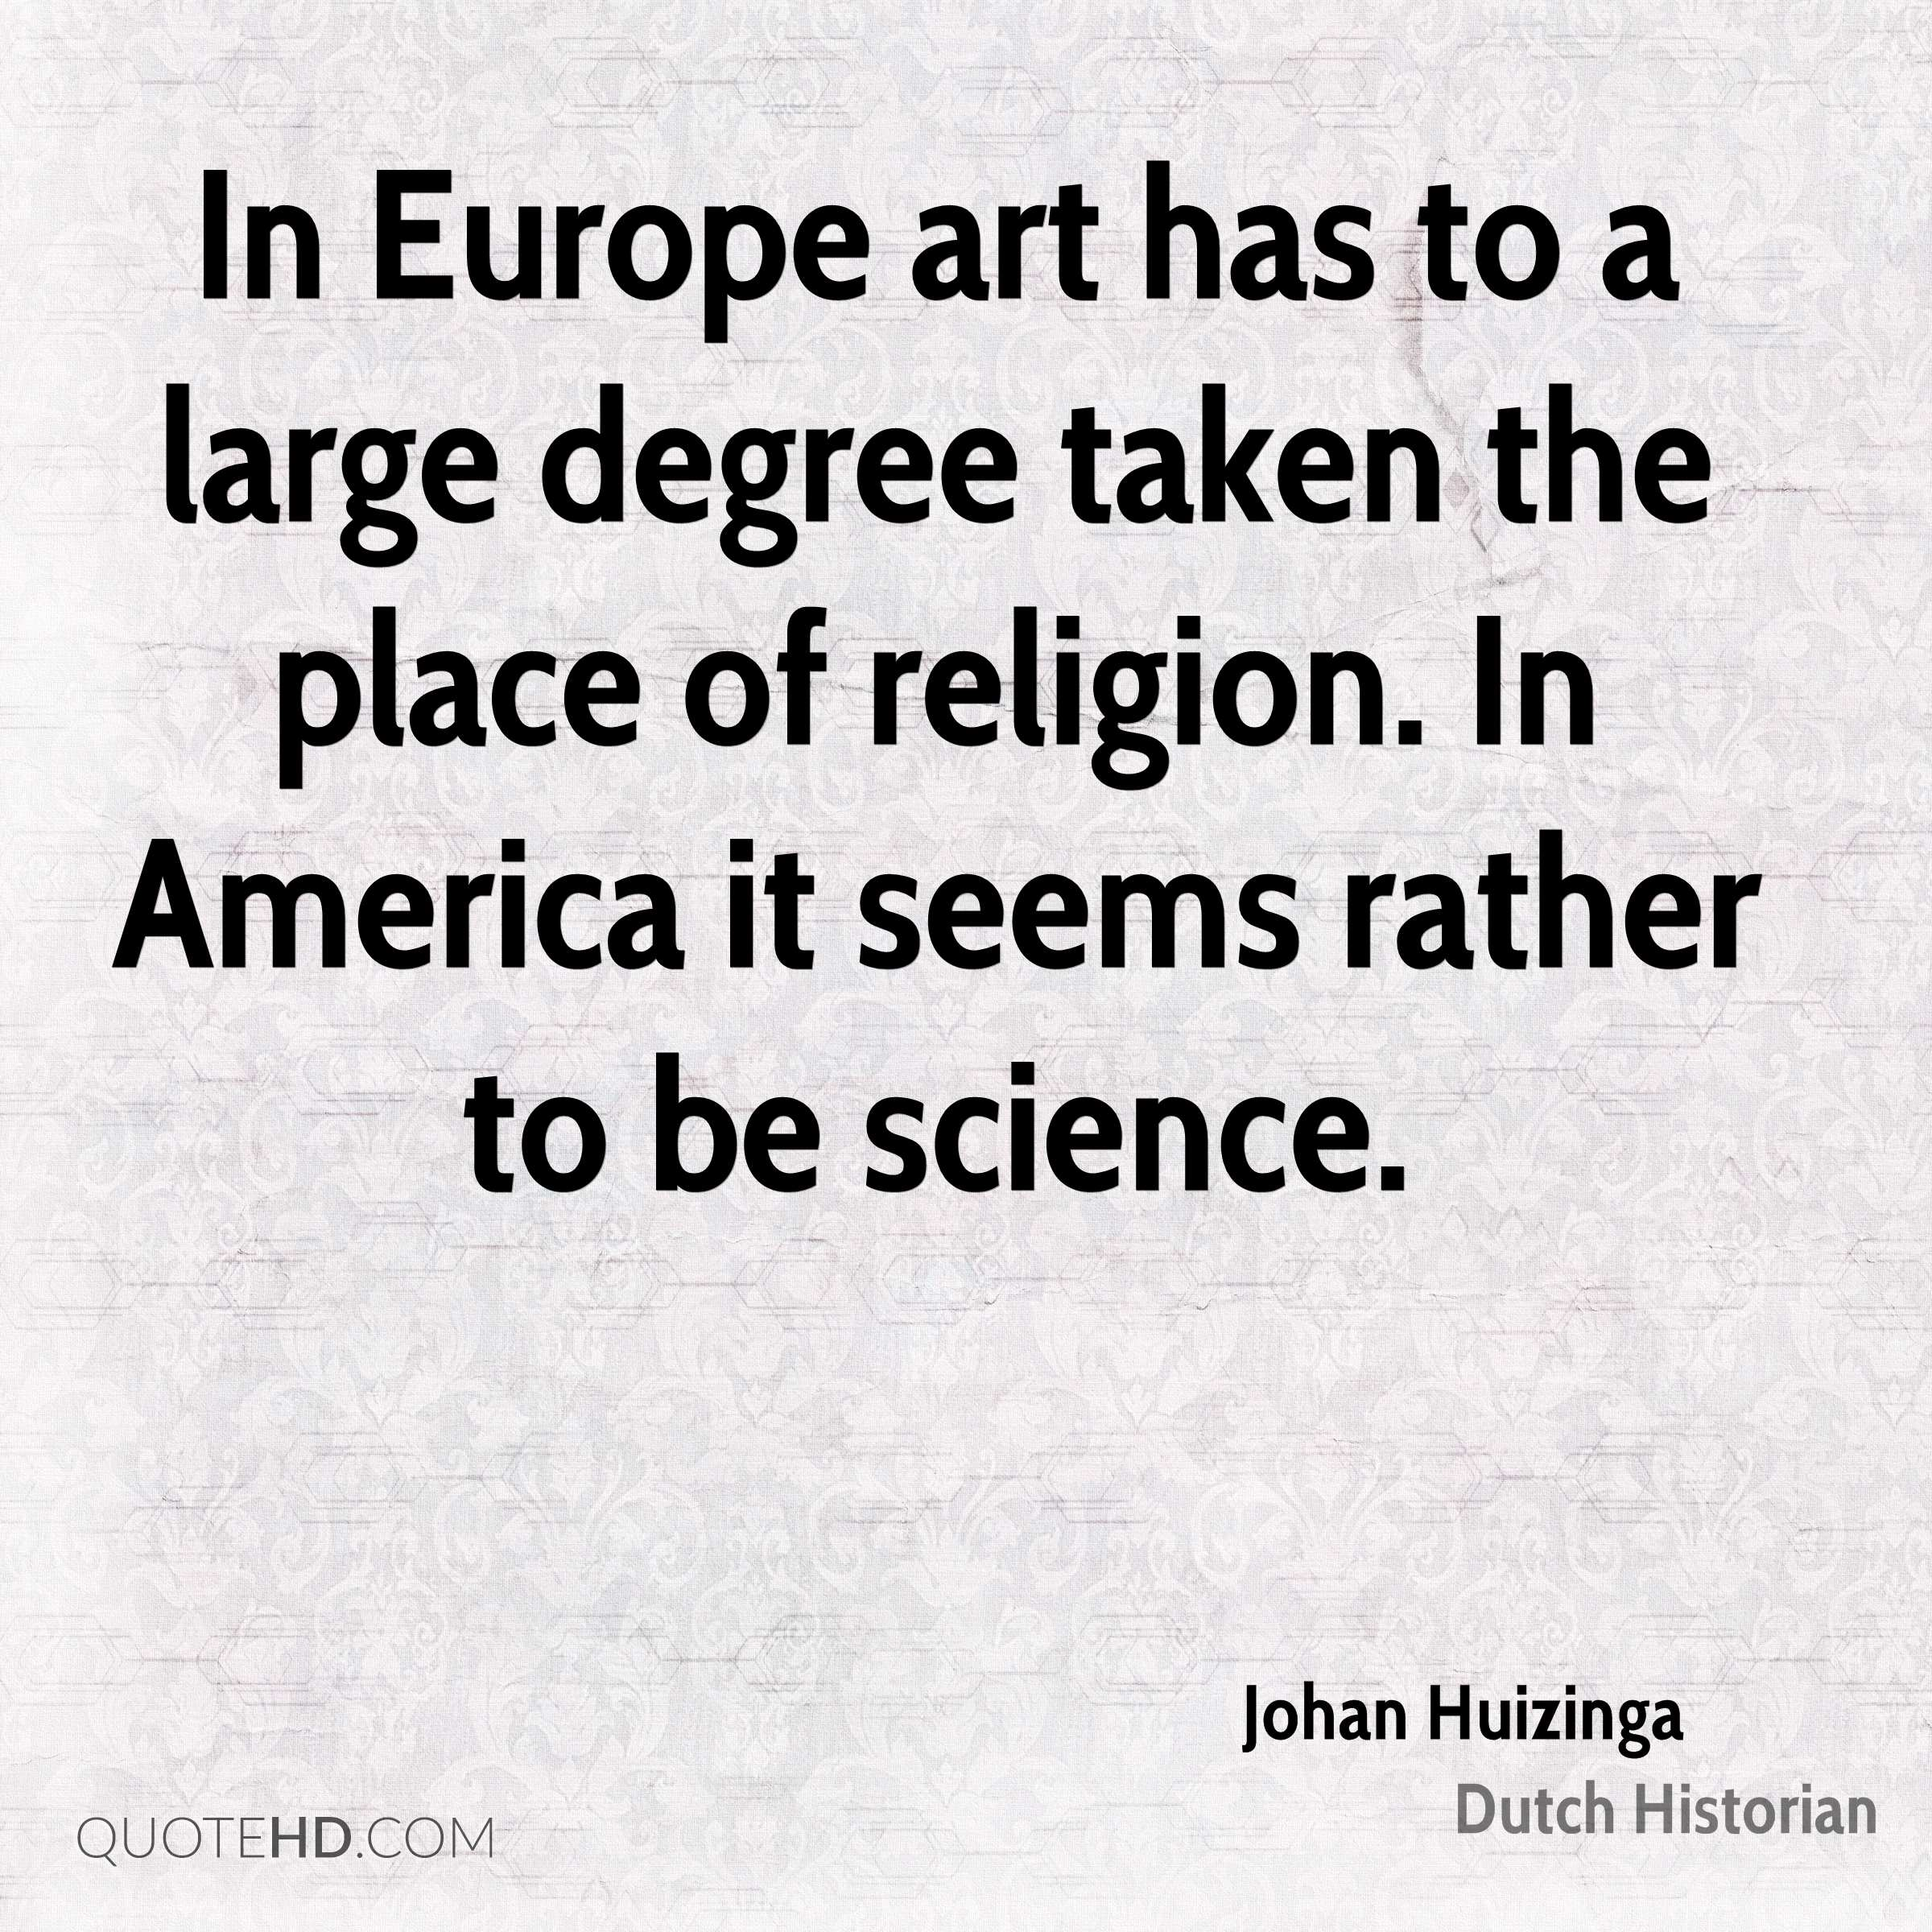 In Europe art has to a large degree taken the place of religion. In America it seems rather to be science.